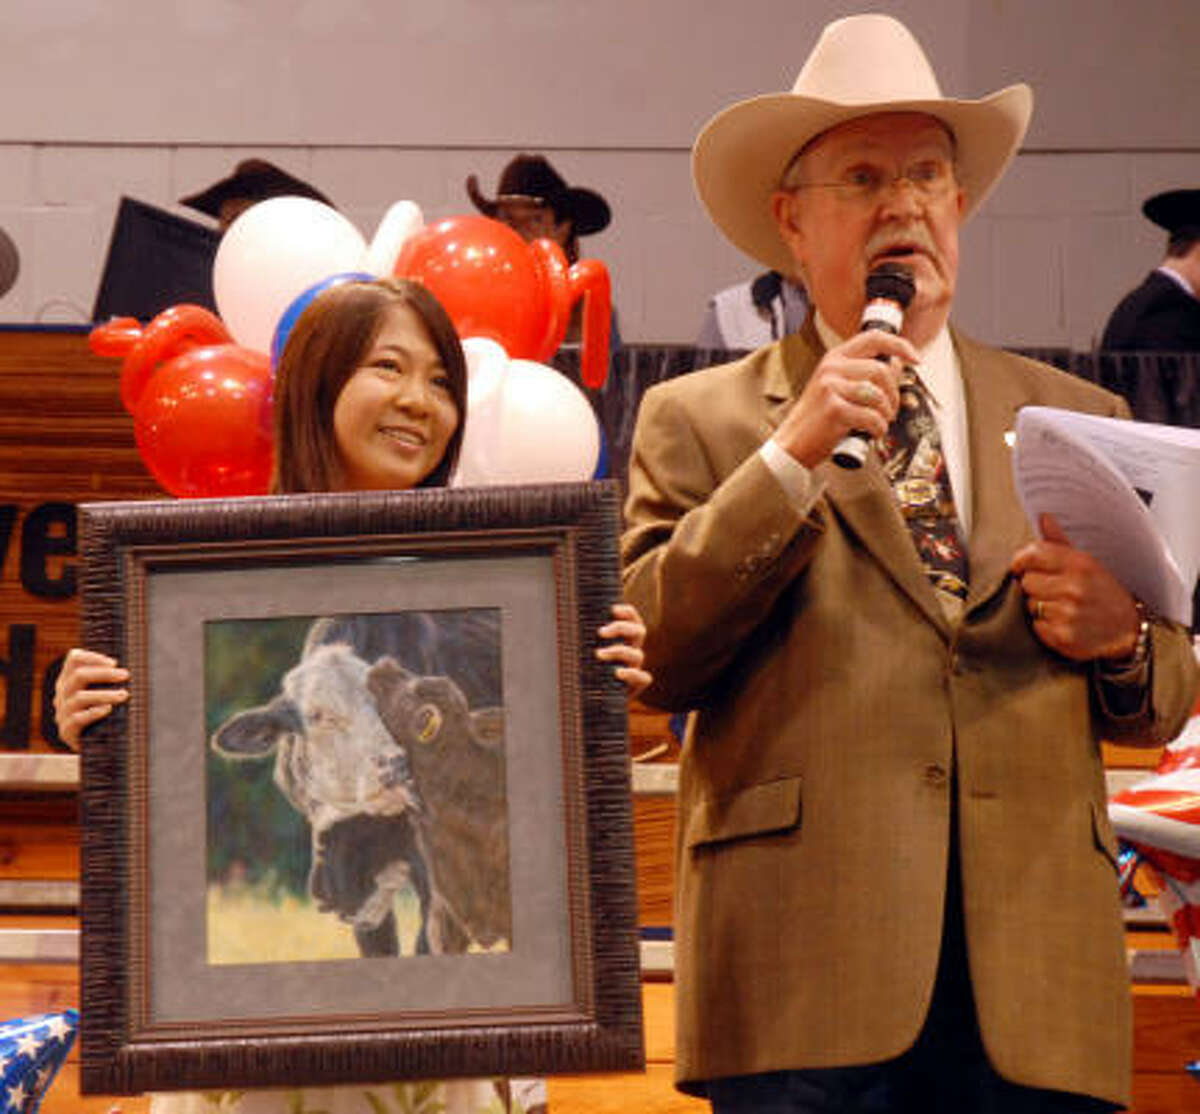 Grand Champion winner Renee Zhan of Katy ISD holds her winning artwork while Constable Bill Bailey talks to the crowd. It sold for $140,000 to Courtney Somerville, Joe Van Matre, Rose Scott and Howard and Donna Webster.